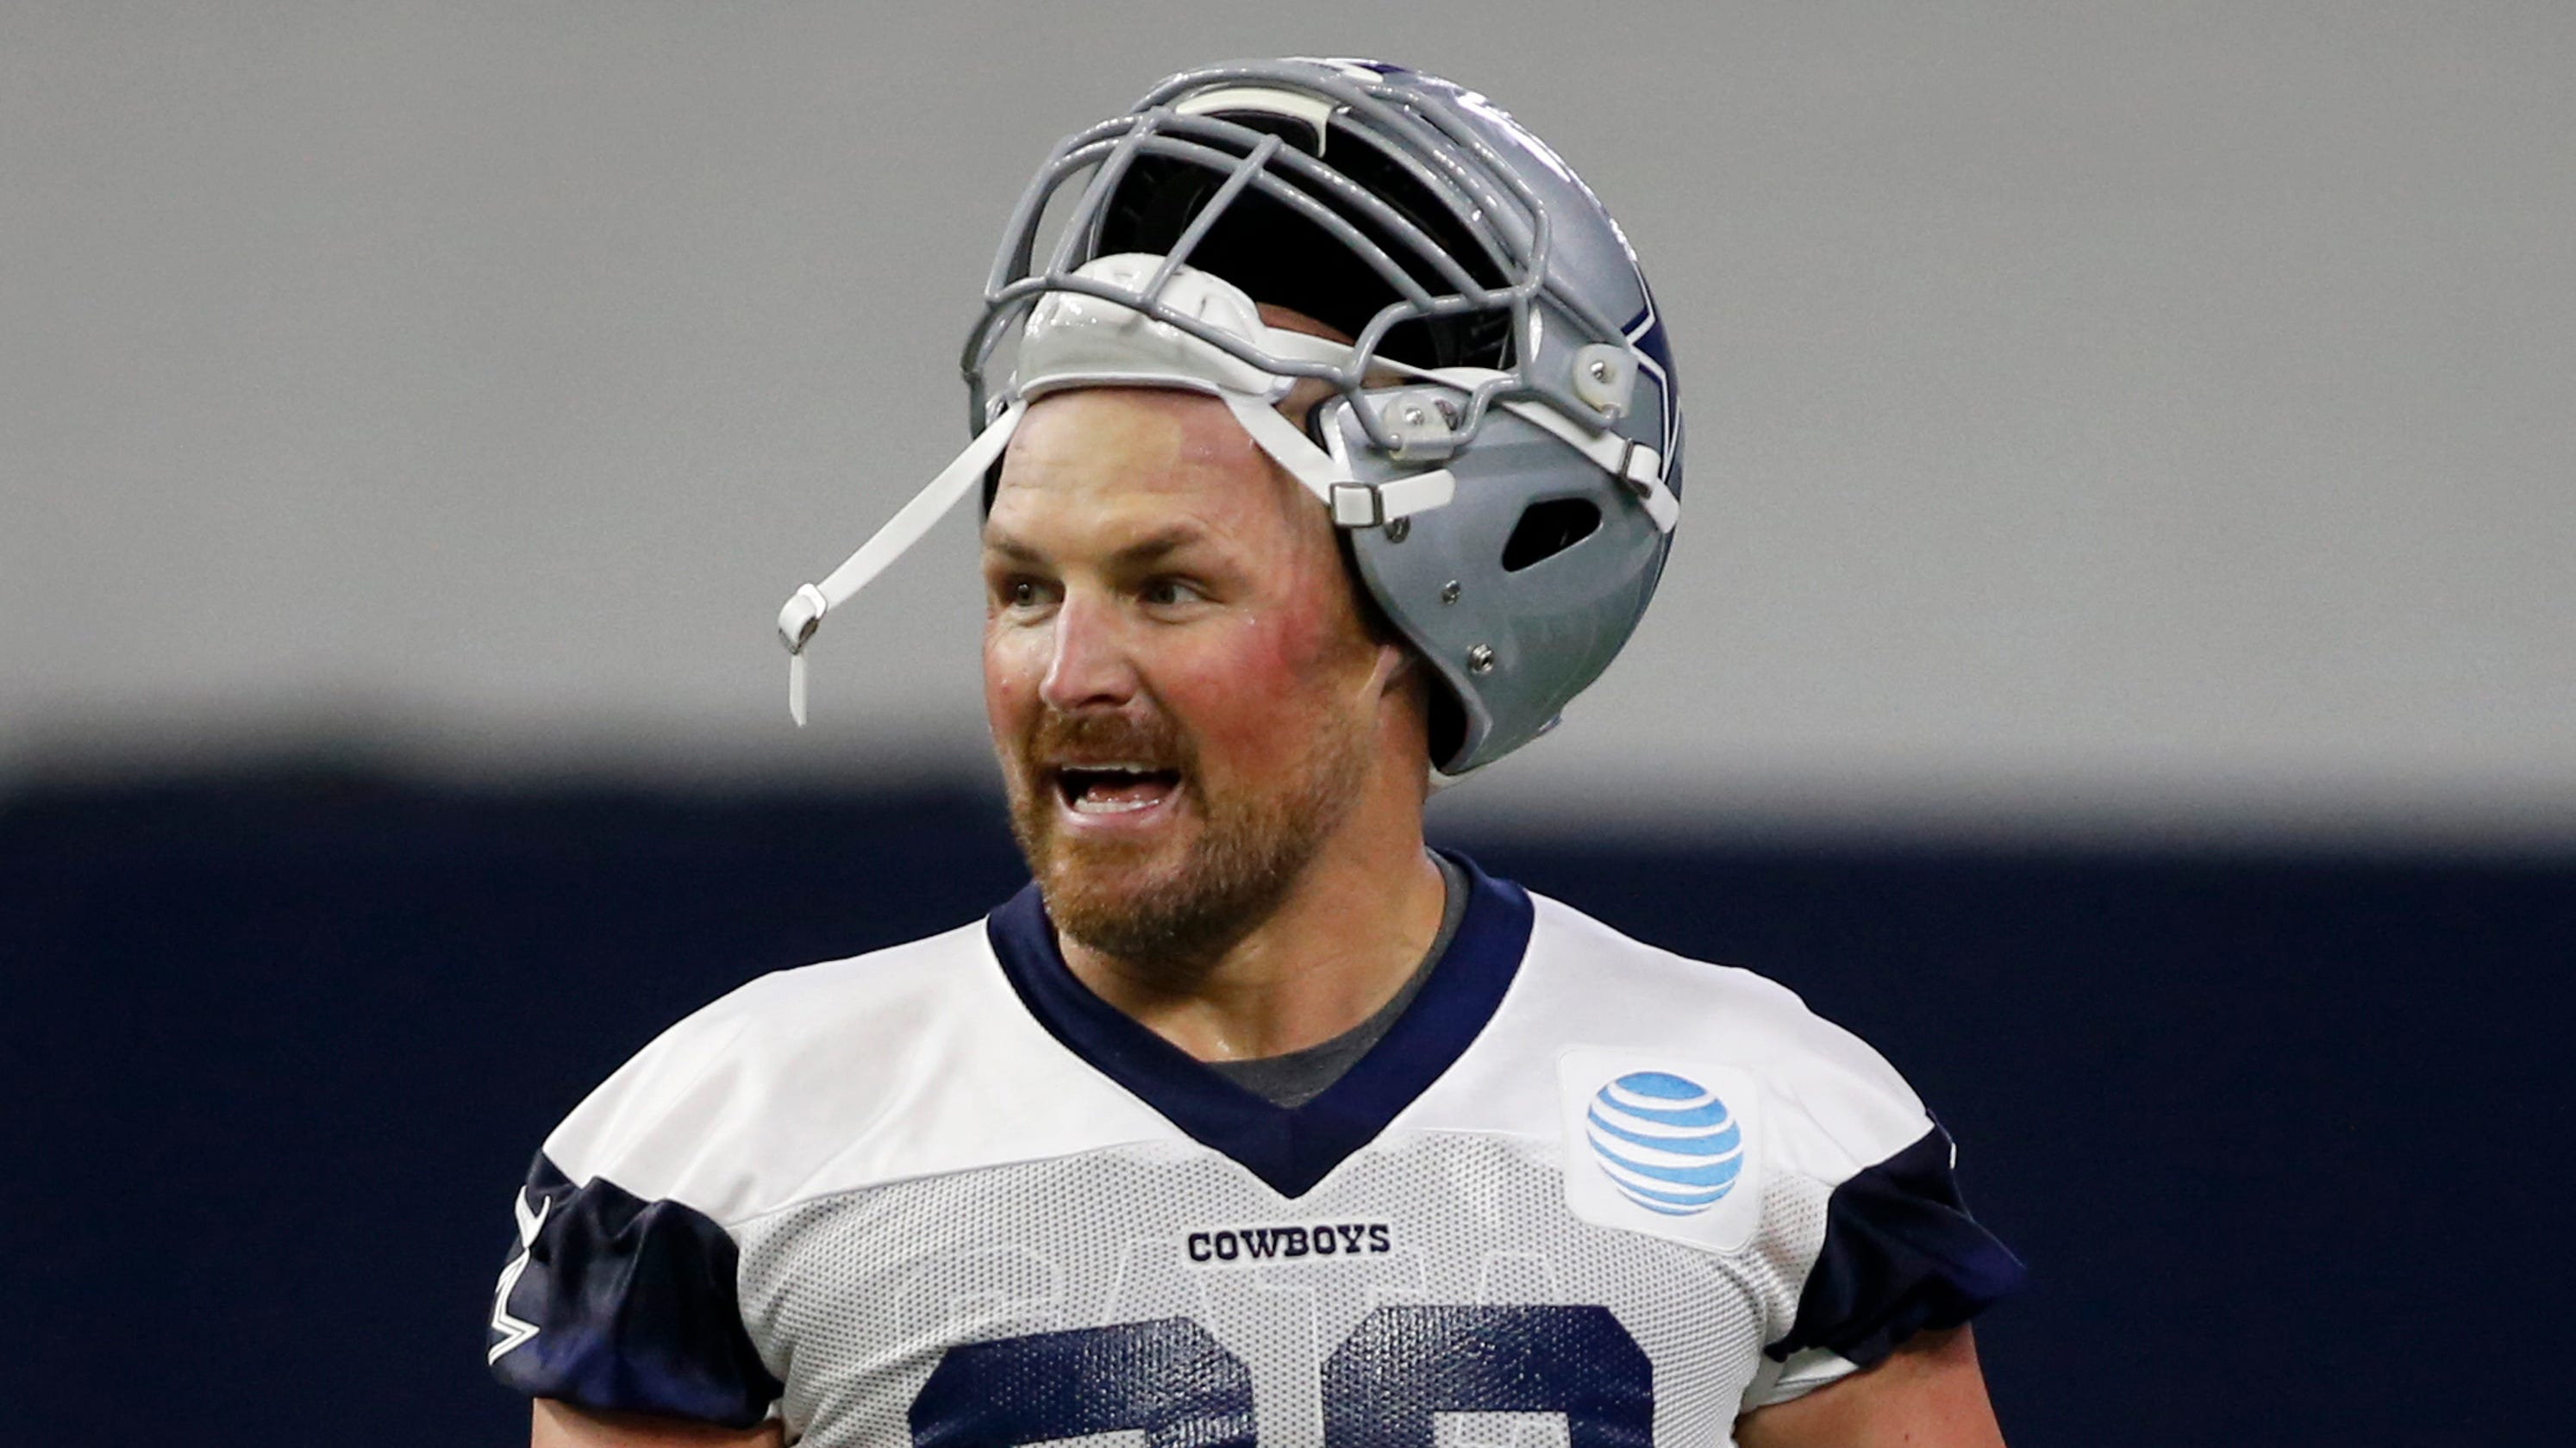 Dallas Cowboys: Jason Witten Motivated By Coach K's Kobe